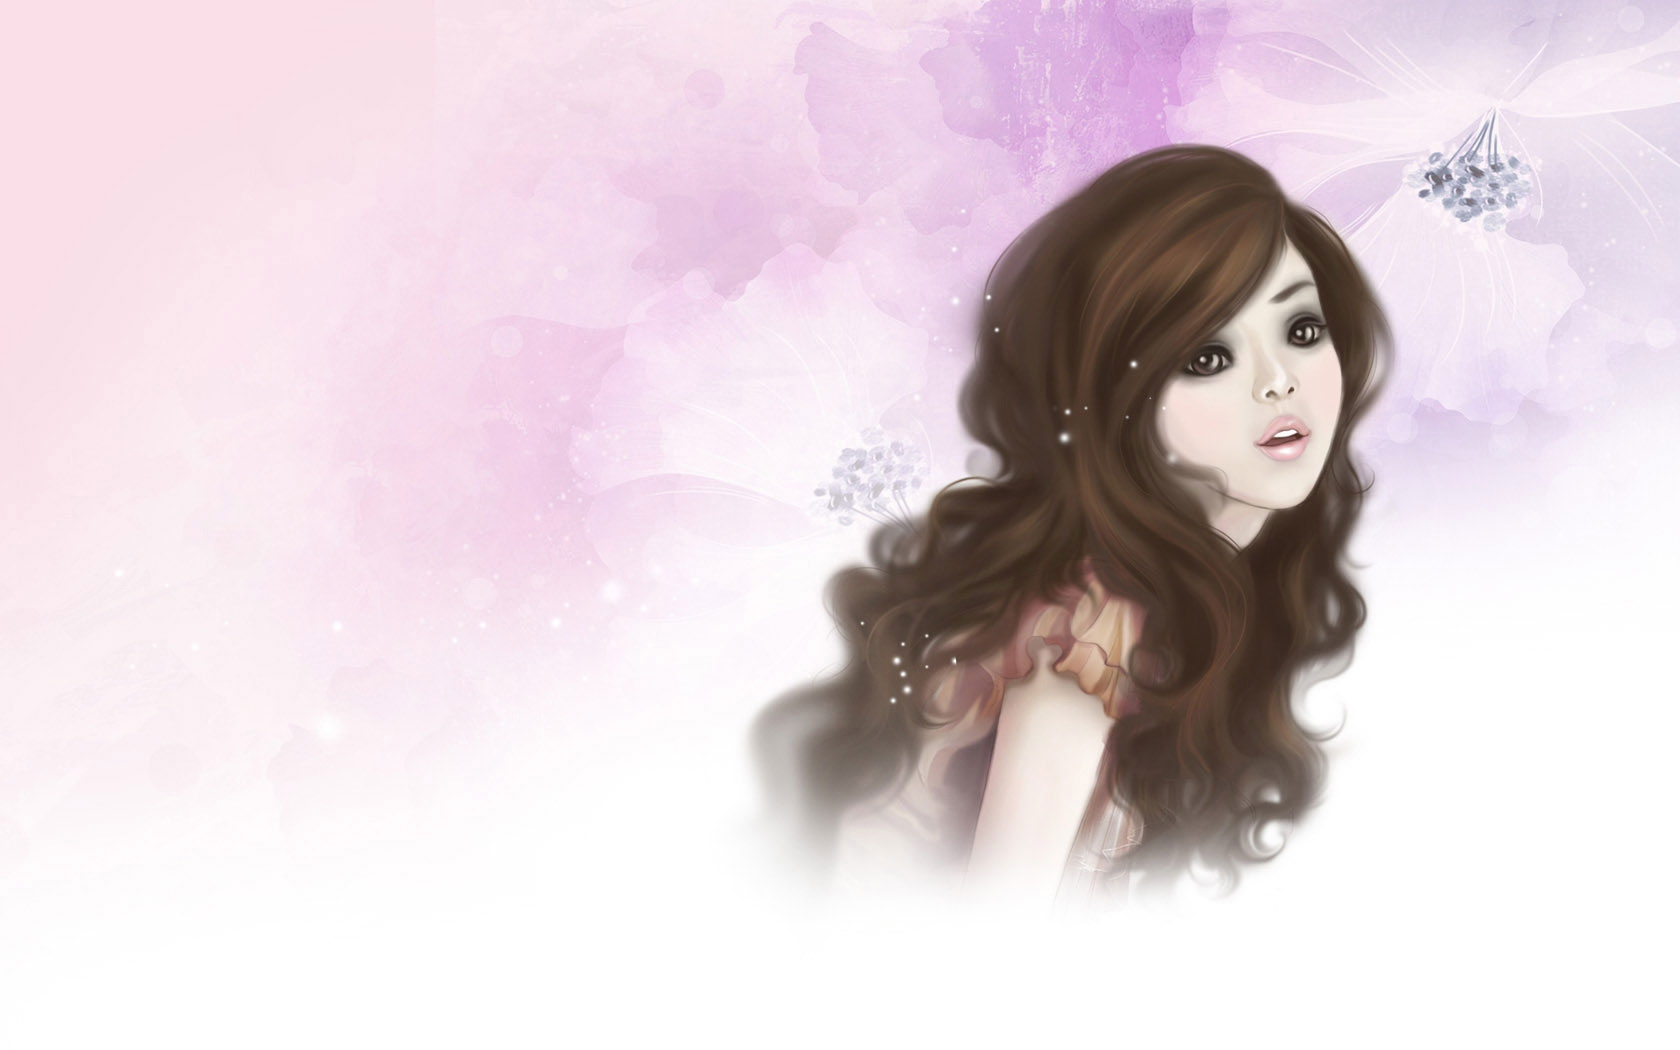 Pretty Cartoon Girl wallpapers Pretty Cartoon Girl stock photos 1680x1050